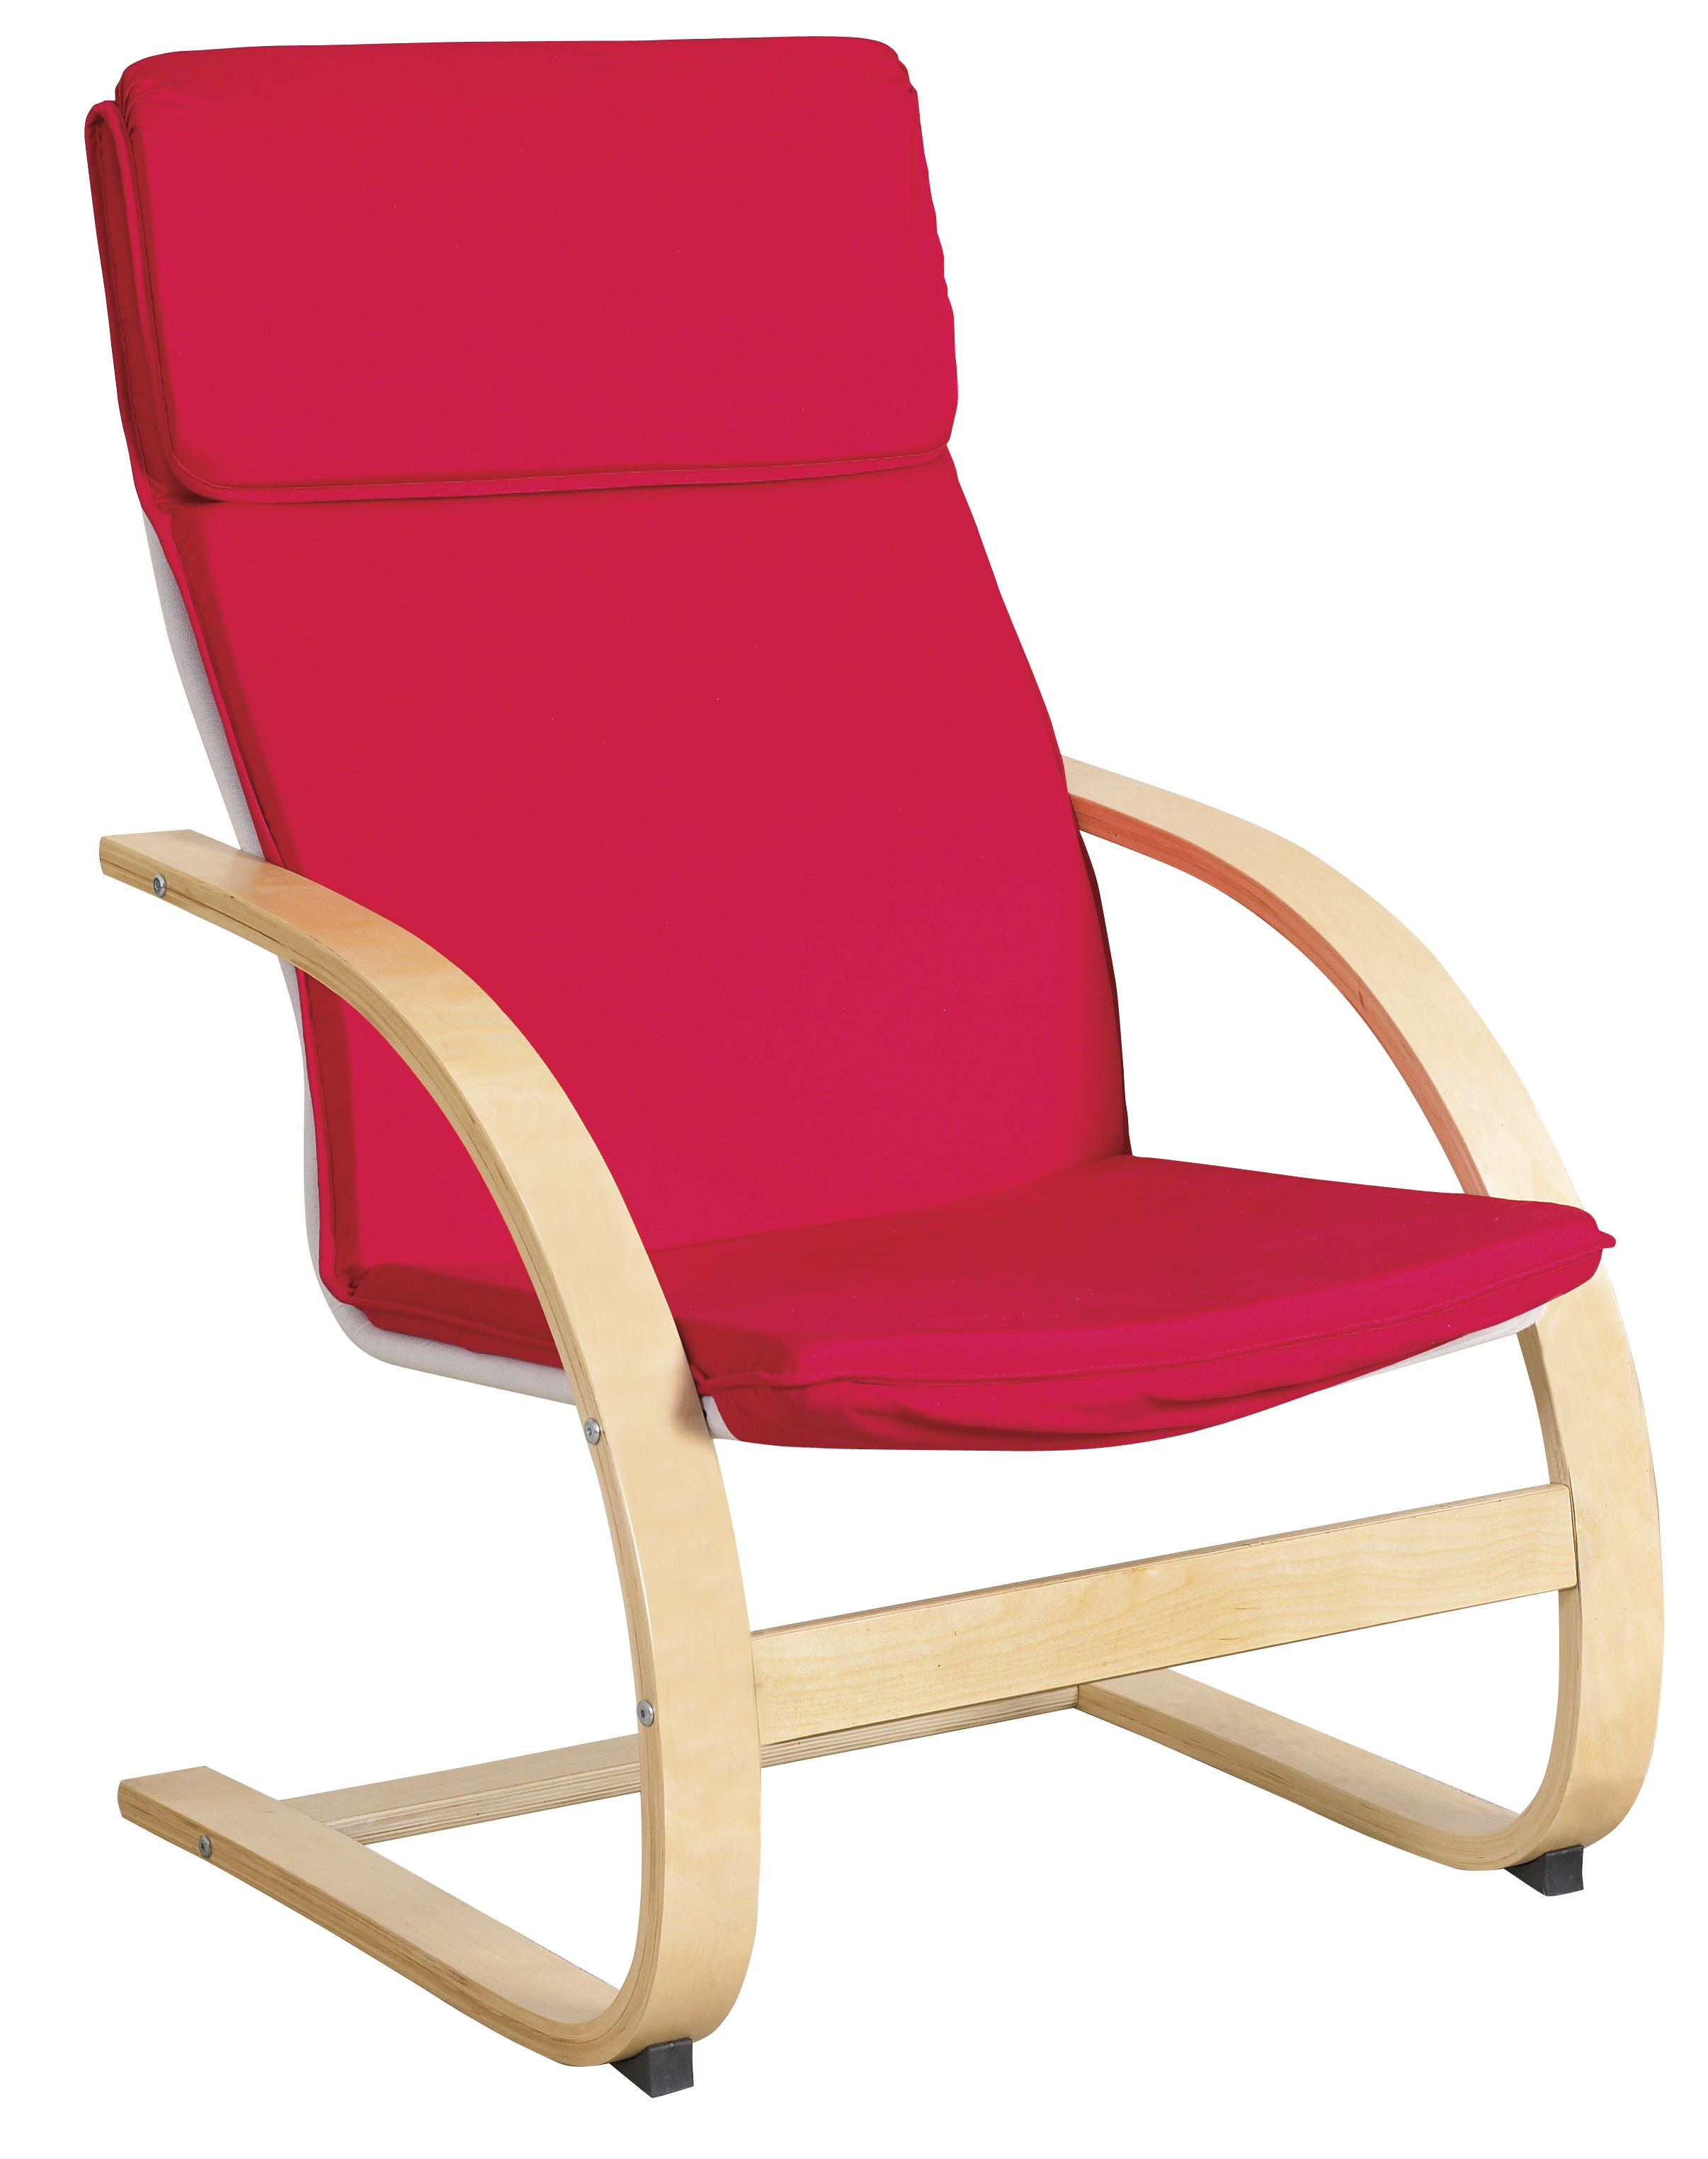 Offex Preschool Classroom Kids Adult Comfort Chair